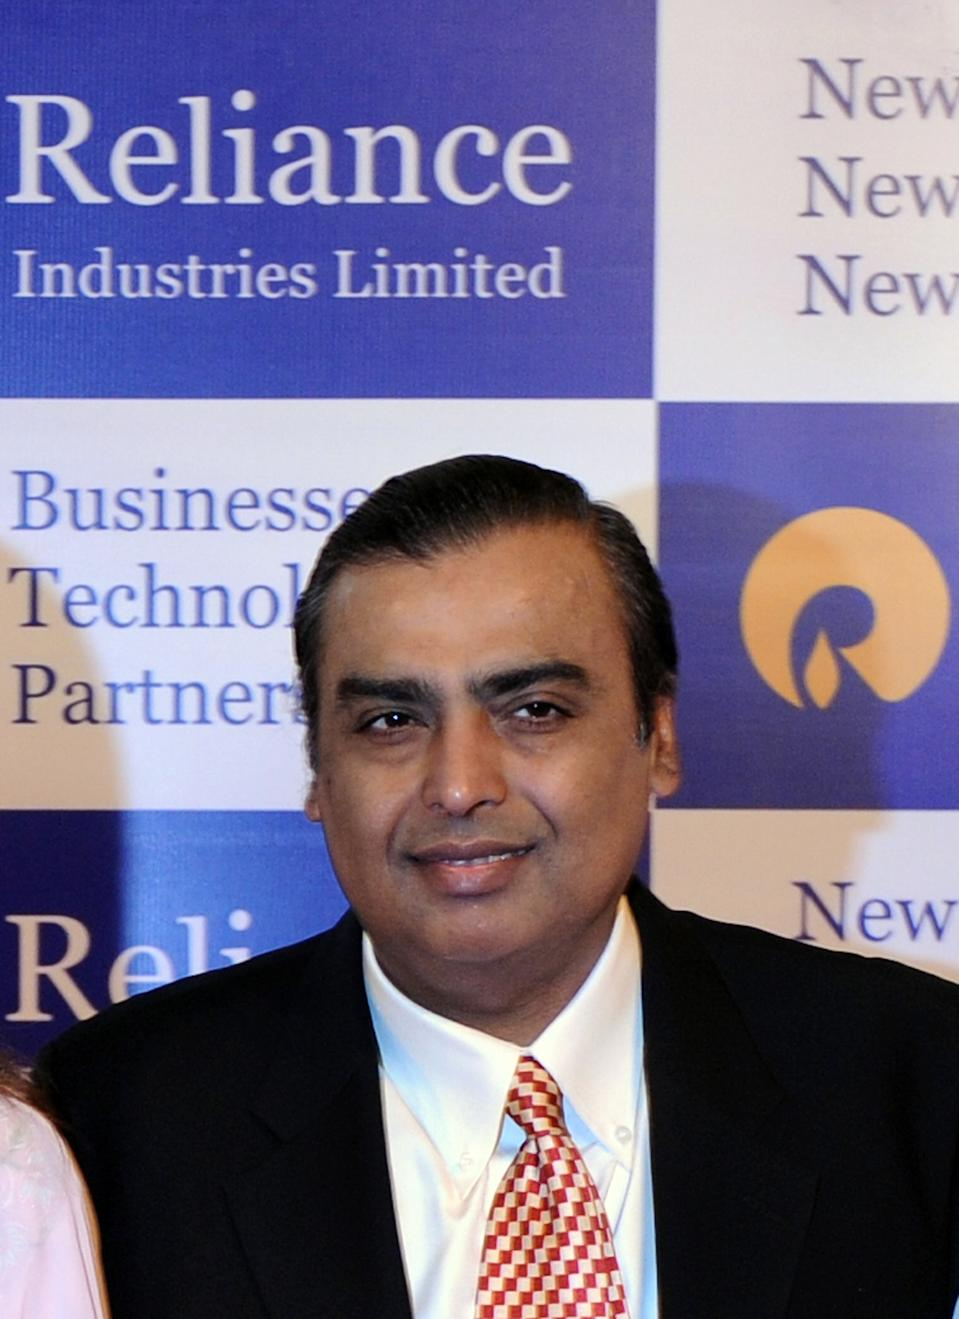 "Reliance Industries Chairman Mukesh Ambani poses on his arrival at the company's annual general meeting in Mumbai on June 3, 2011. India's largest private firm Reliance Industries plans to become completely debt-free in the financial year, its chairman Mukesh Ambani announced. Ambani, India's richest man, said Reliance planned to ""significantly enhance its ranking amongst global businesses"" as economic growth expands in India, with an aim to ramp-up its existing oil and gas and retail businesses further. AFP PHOTO/ Indranil MUKHERJEE"